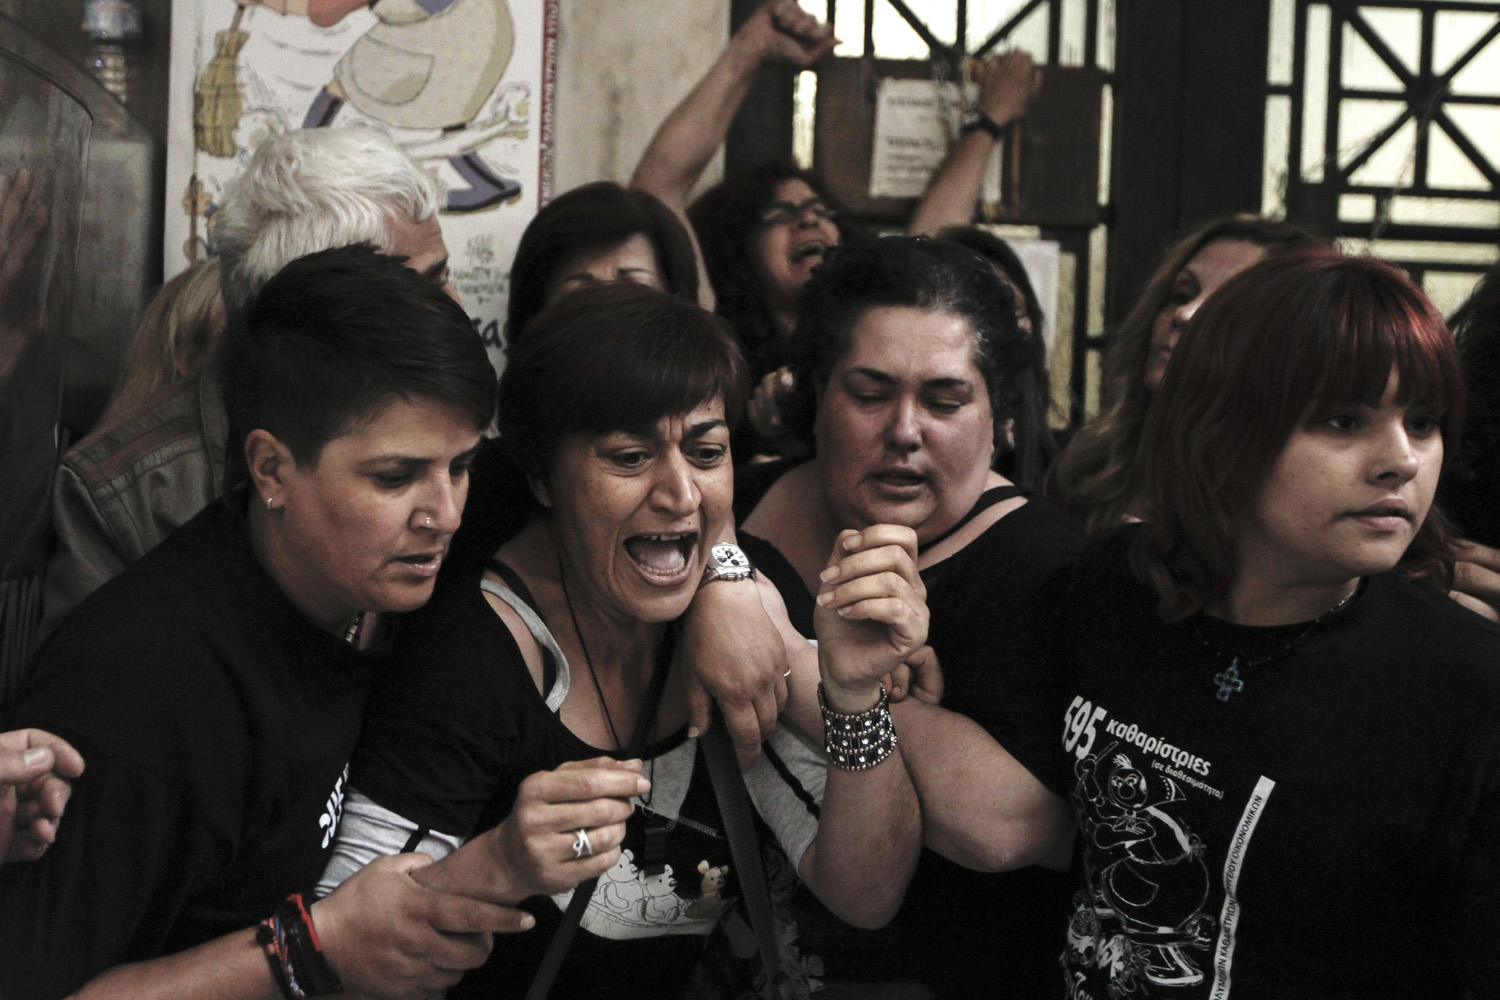 June 3, 2014. Cleaning ladies from the public sector react as they scuffle with police officers at the entrance of a building housing the Finance Ministry, during a protest against the layoffs and transitions due to a troika-led civil service revamp, in Athens.